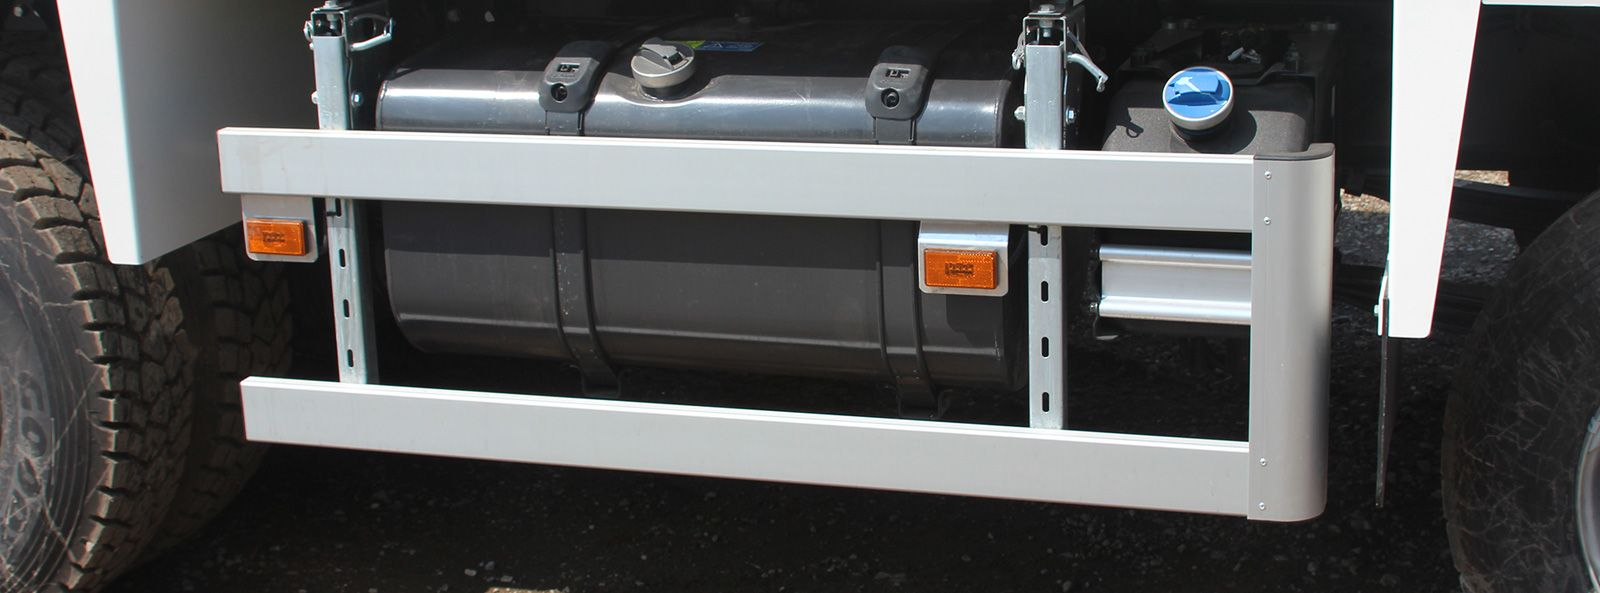 Truck Side Guards & Rails